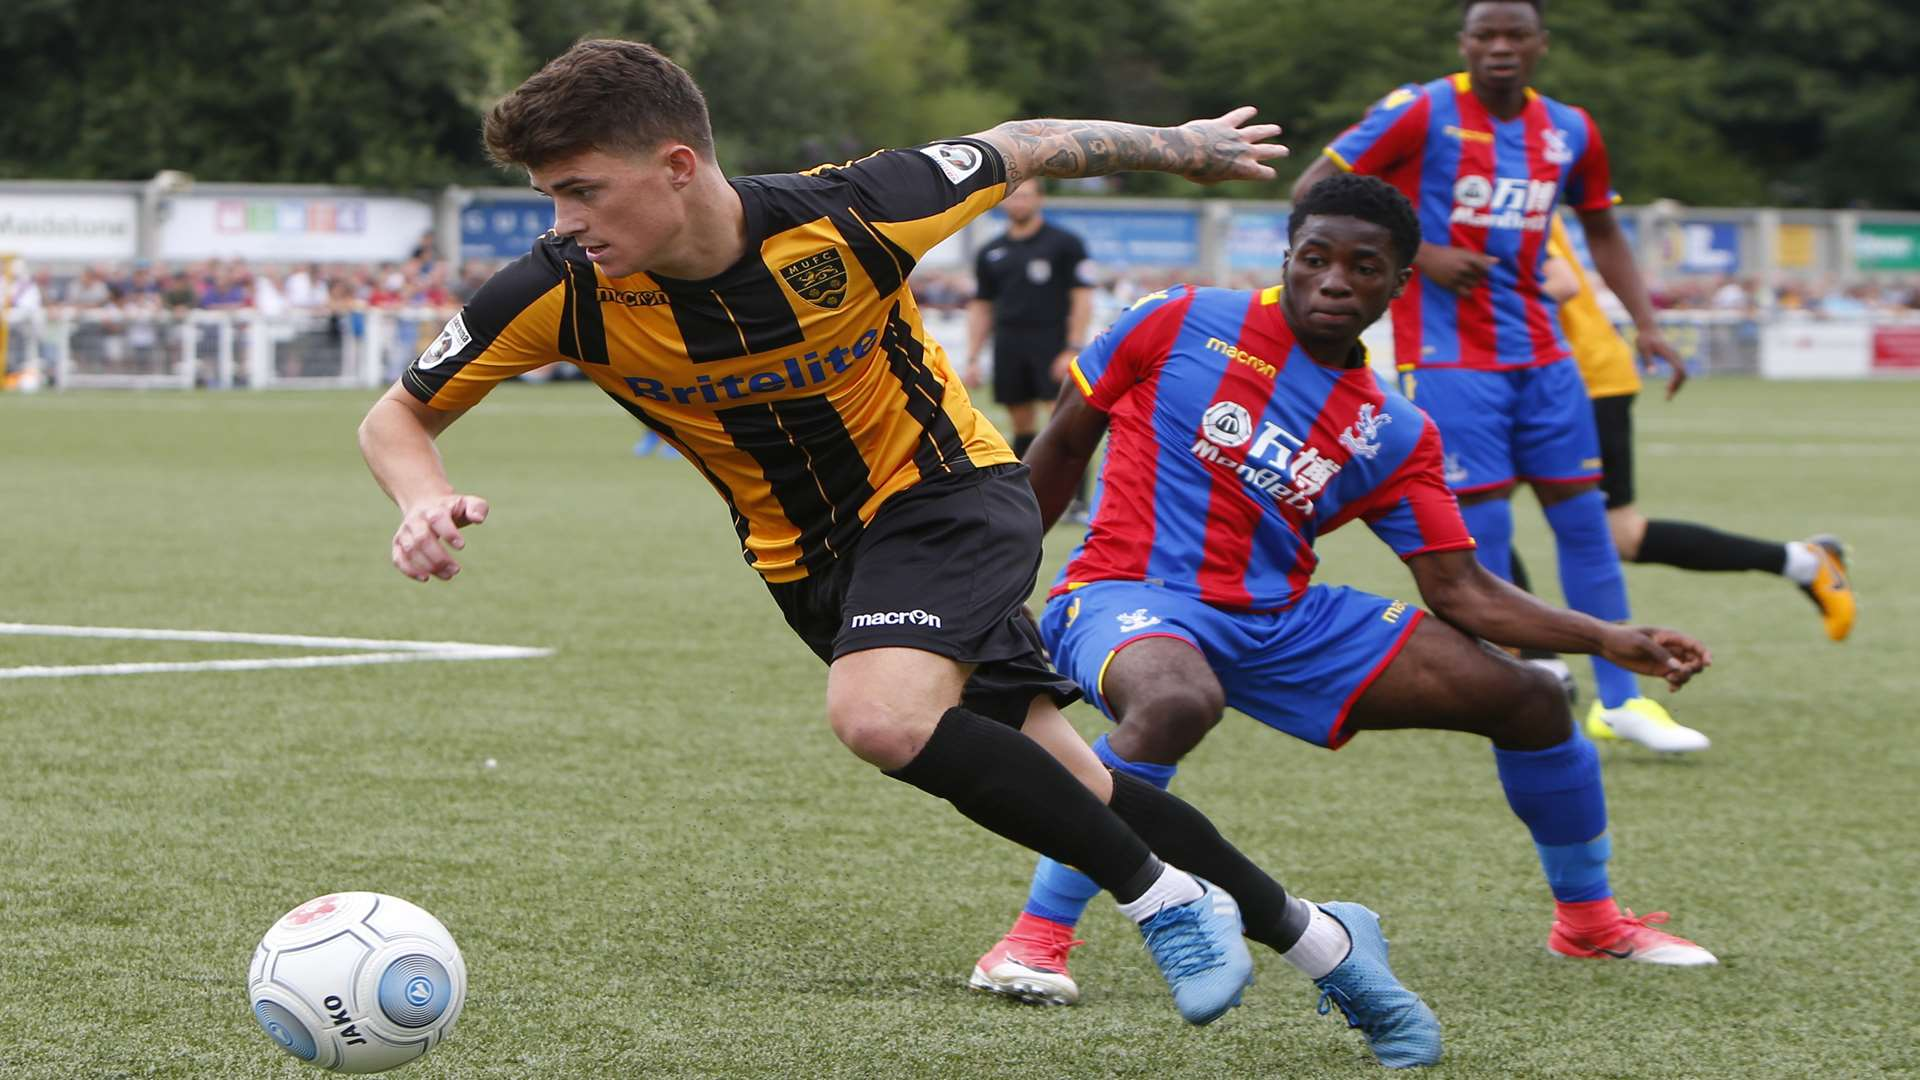 Jack Paxman shows quick feet to evade a Palace challenge Picture: Andy Jones